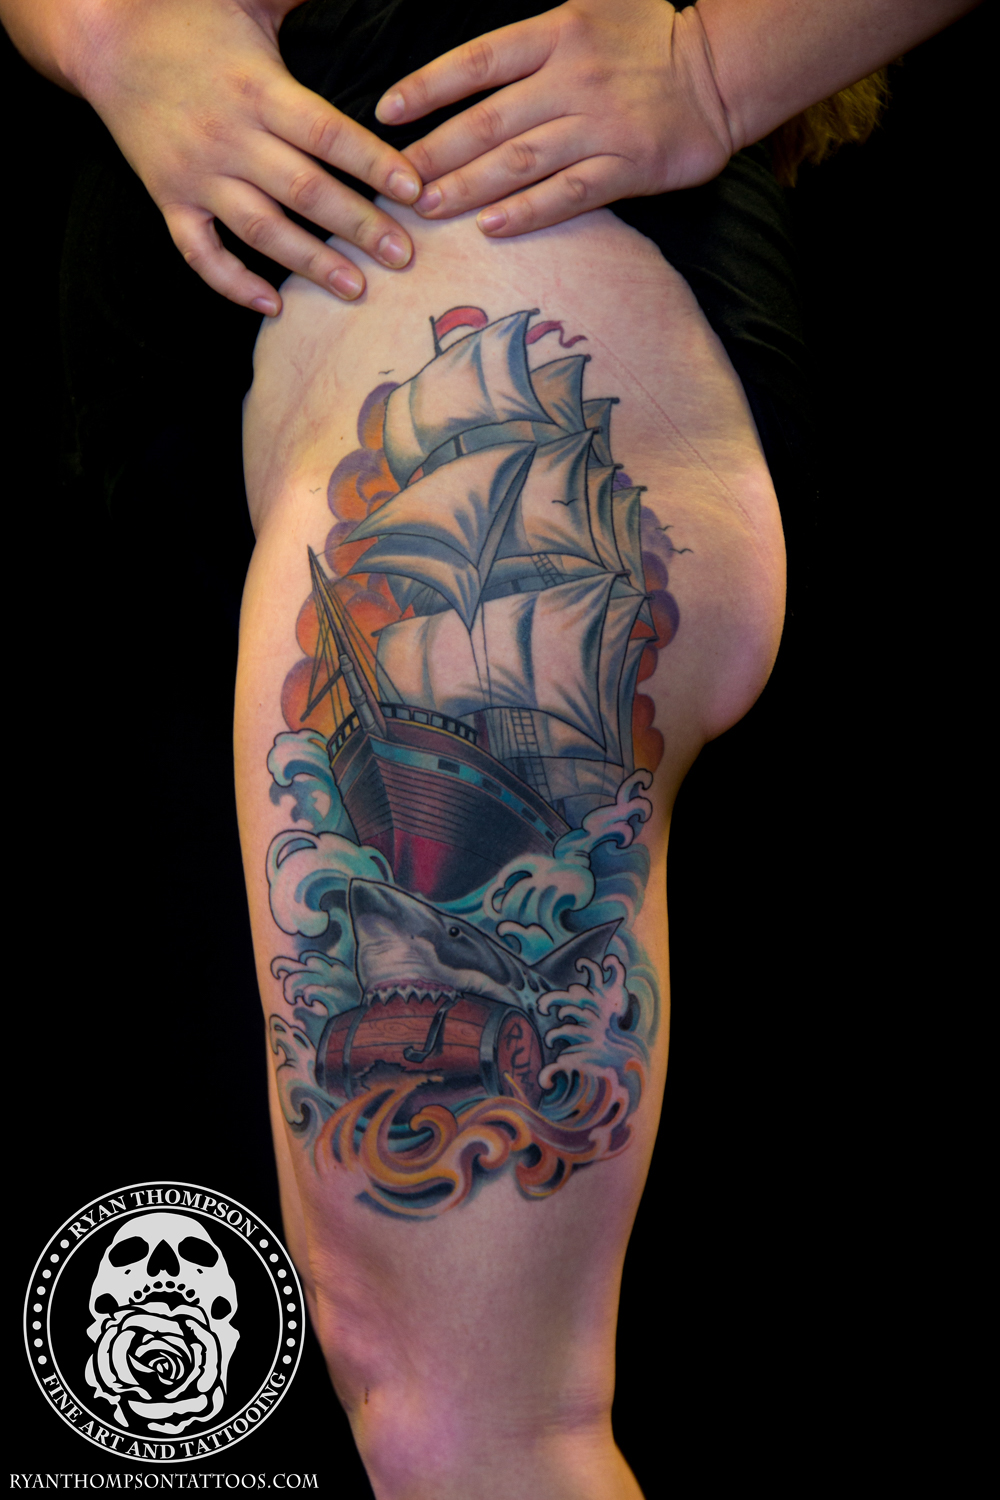 Katie's Ship and Shark Thigh